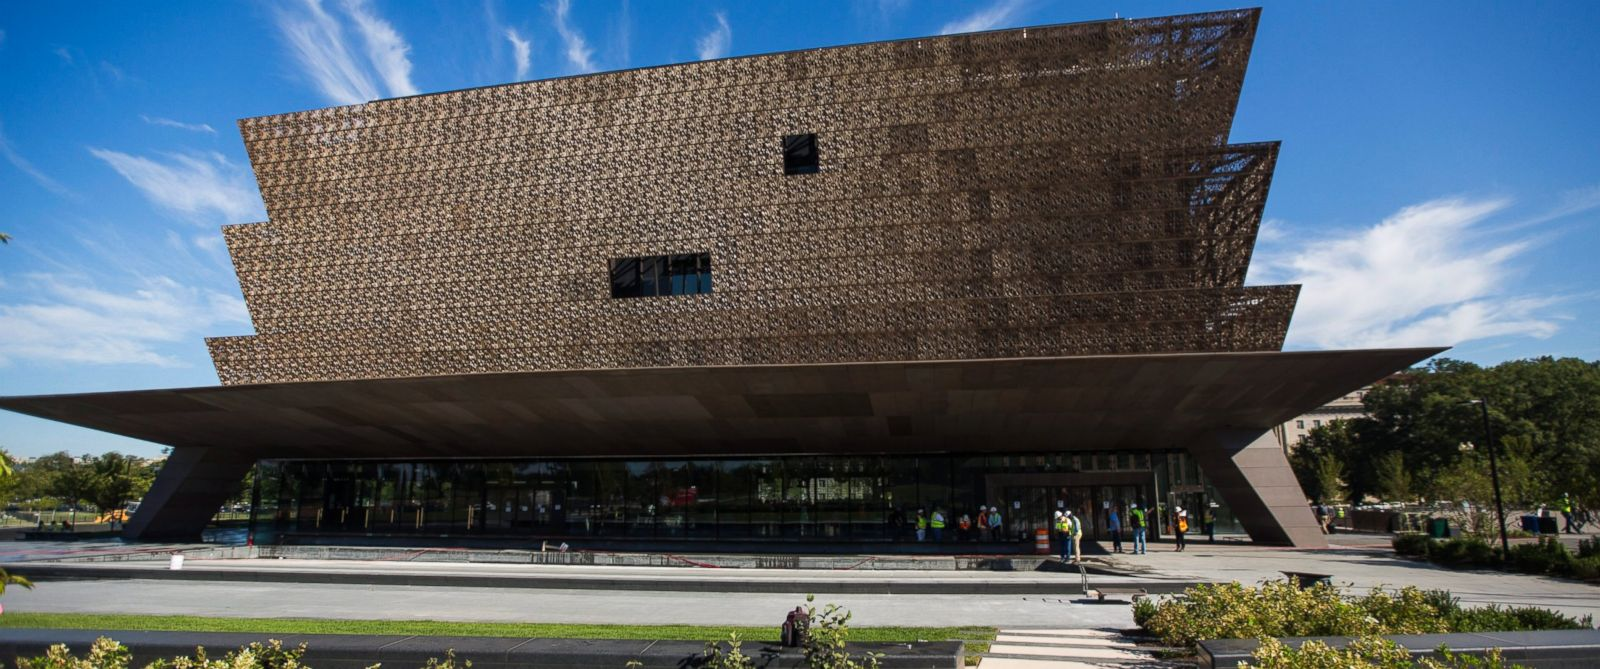 photo a view of the national museum of african american history and culture in washington